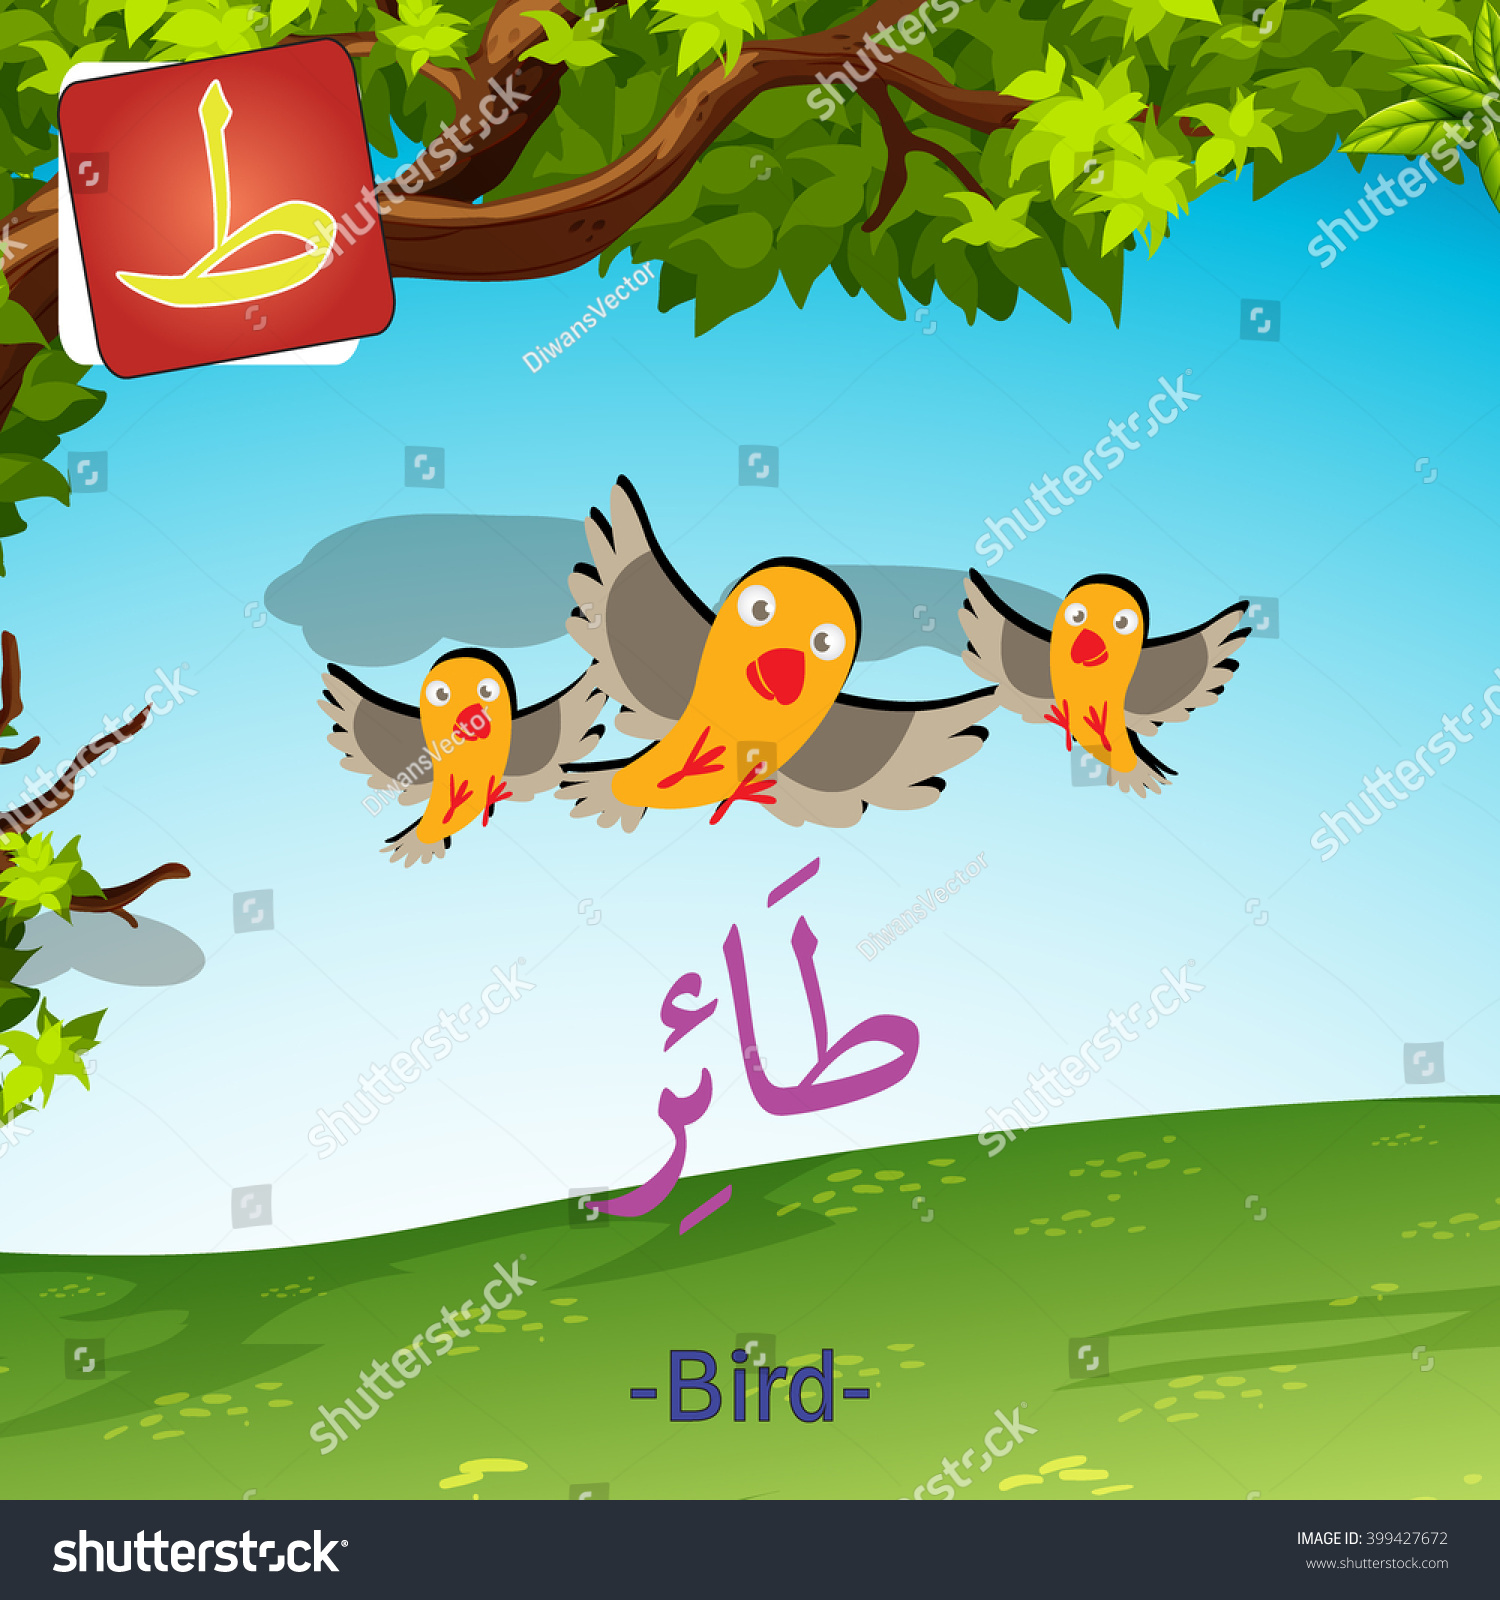 Arabic alphabet for kids with cute animals and fruit for each letter - Arabic Alphabet Cute Animal Vector Colorful Of Bird Tha